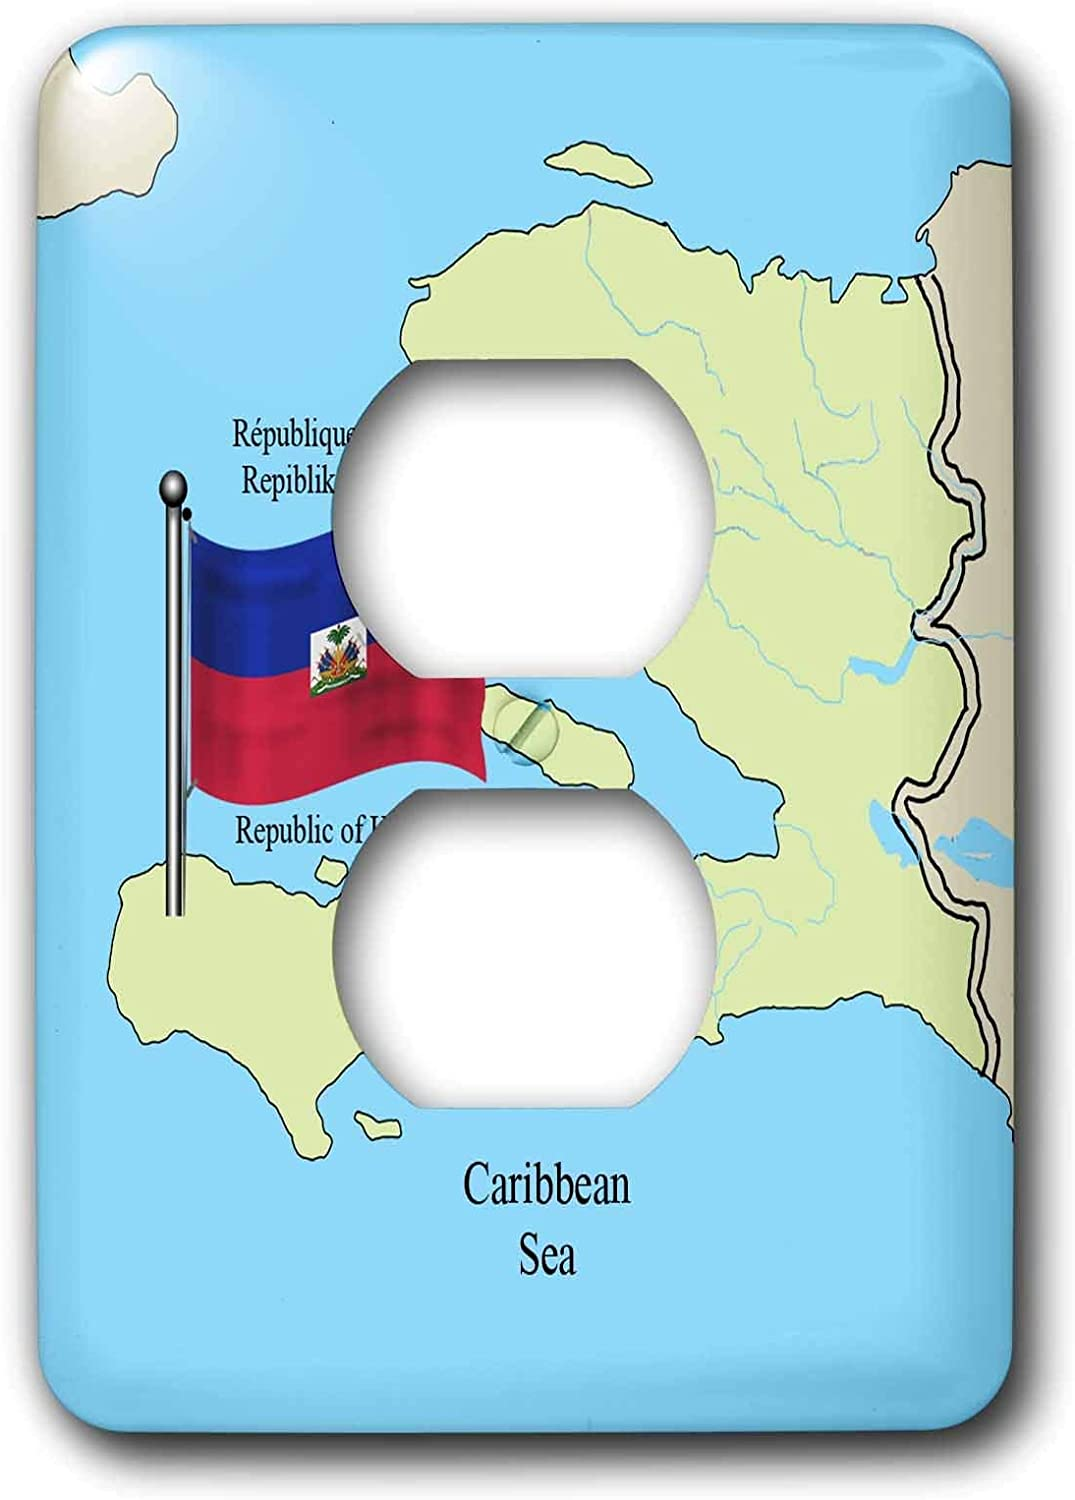 Duplex Receptacle Outlet Wallplate 1 Gang Outlet Covers The Flag And Map Of Haiti With The Republic Of Haiti Printed In English French And Haitian Creole Classic Beadboard Unbreakable Faceplate